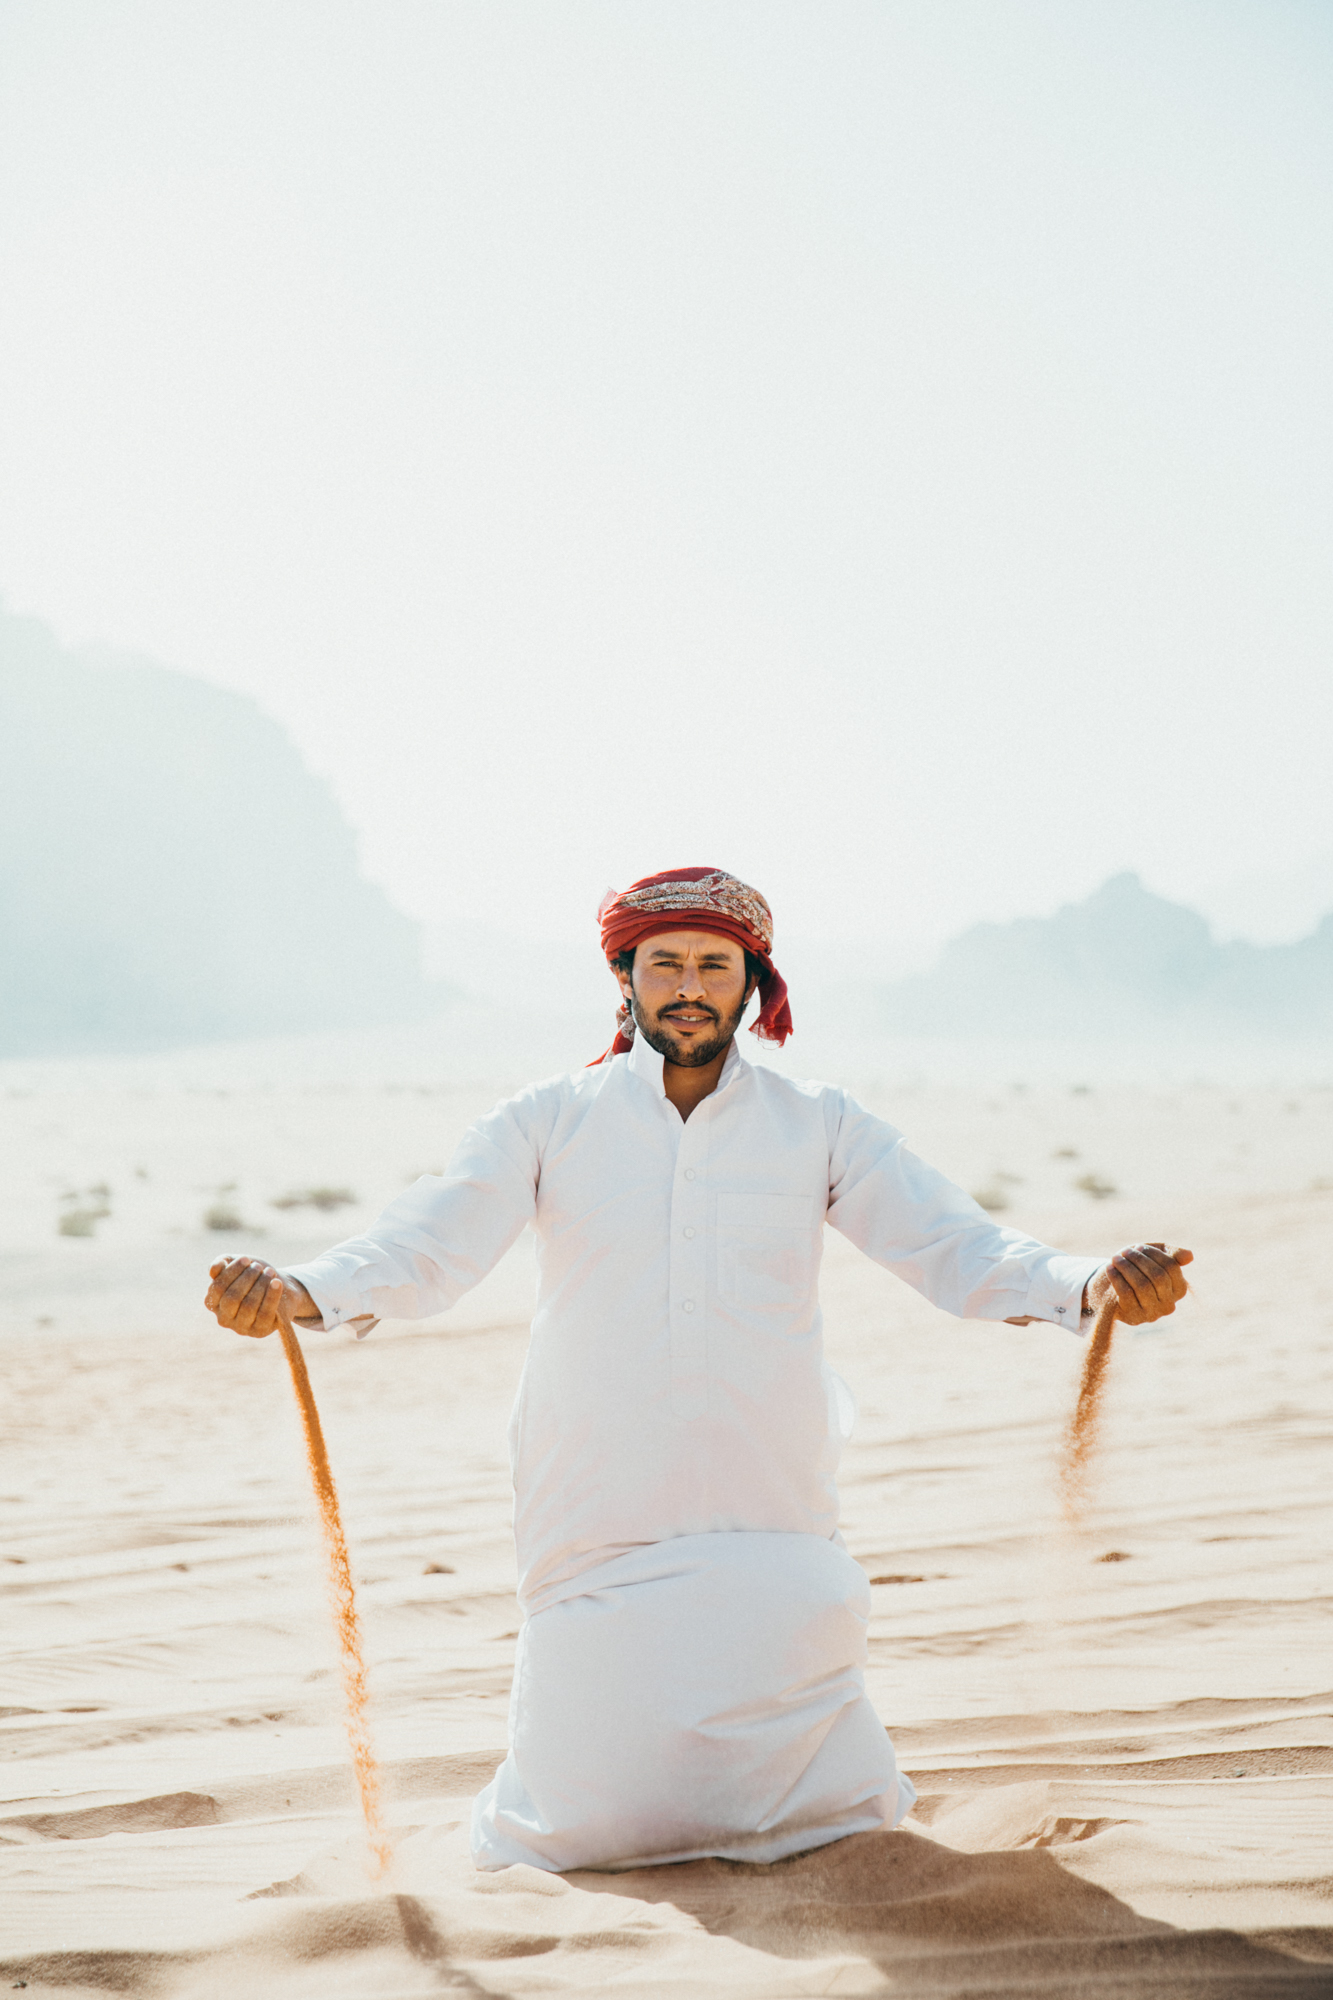 We were taking photos of each other dropping sand and then our guide came in and wanted to be part of the action! His photo turned out the best, of course.